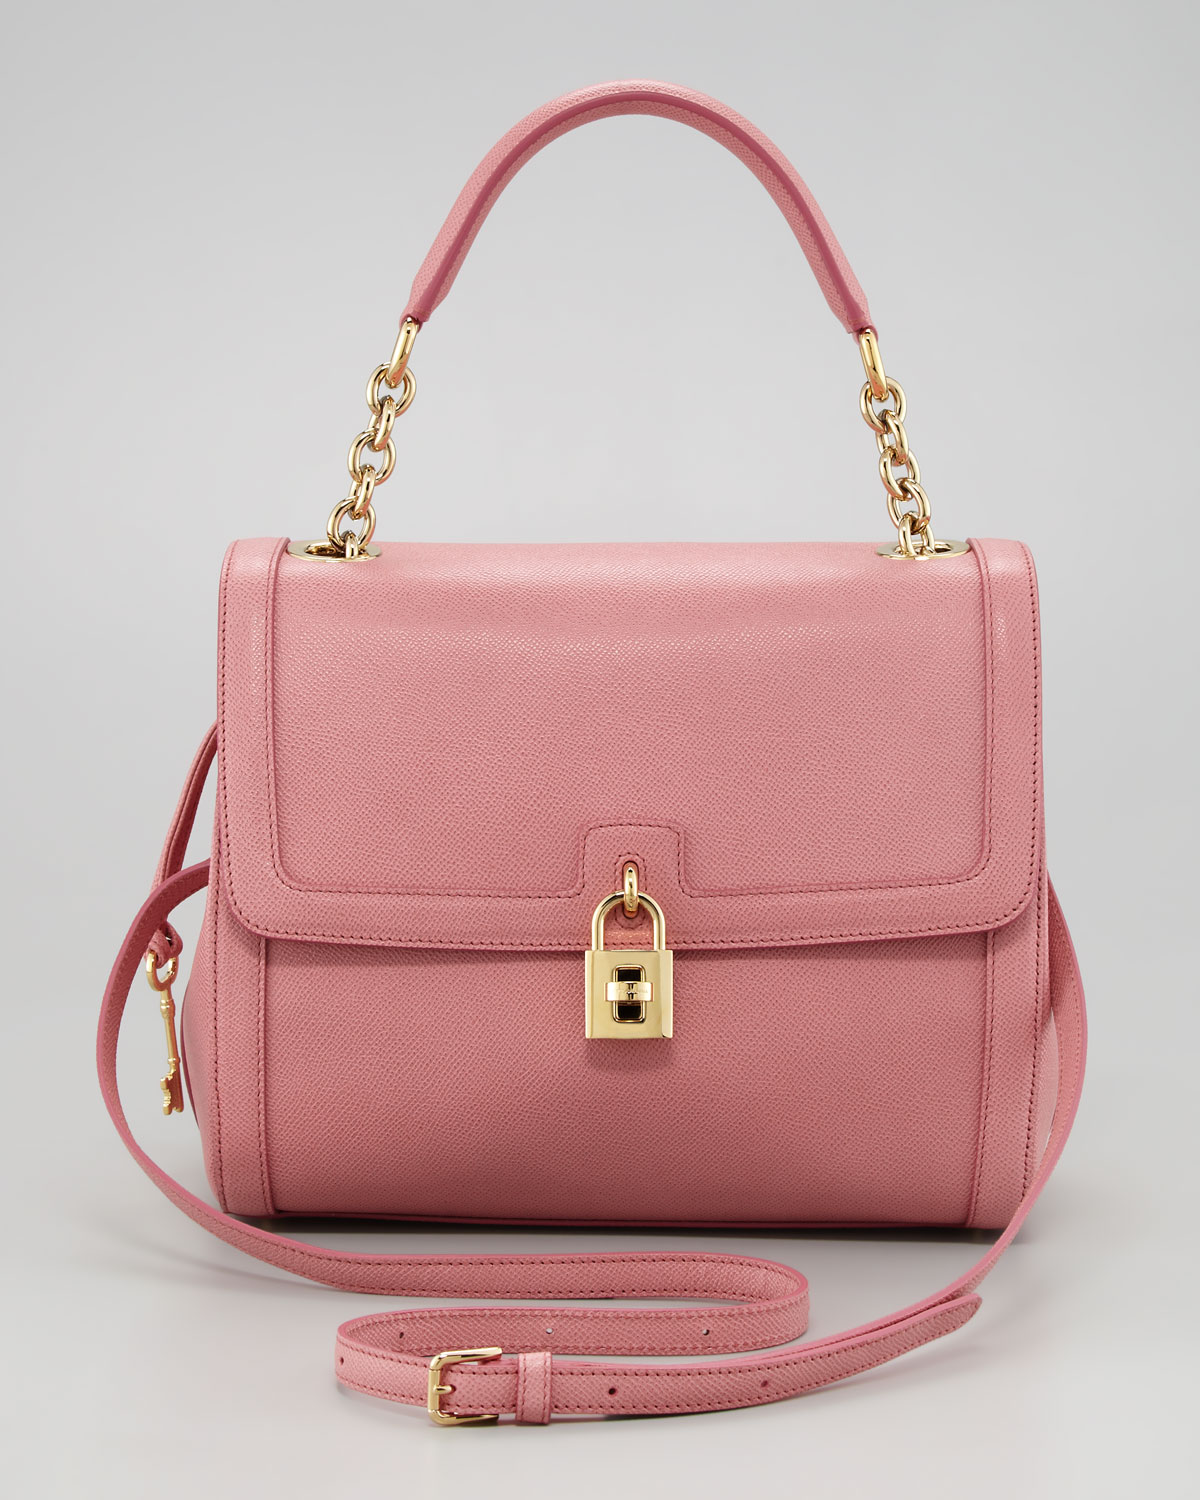 Lyst - Dolce   Gabbana Miss Dolce Leather Satchel Bag in Pink b3567dd77c617